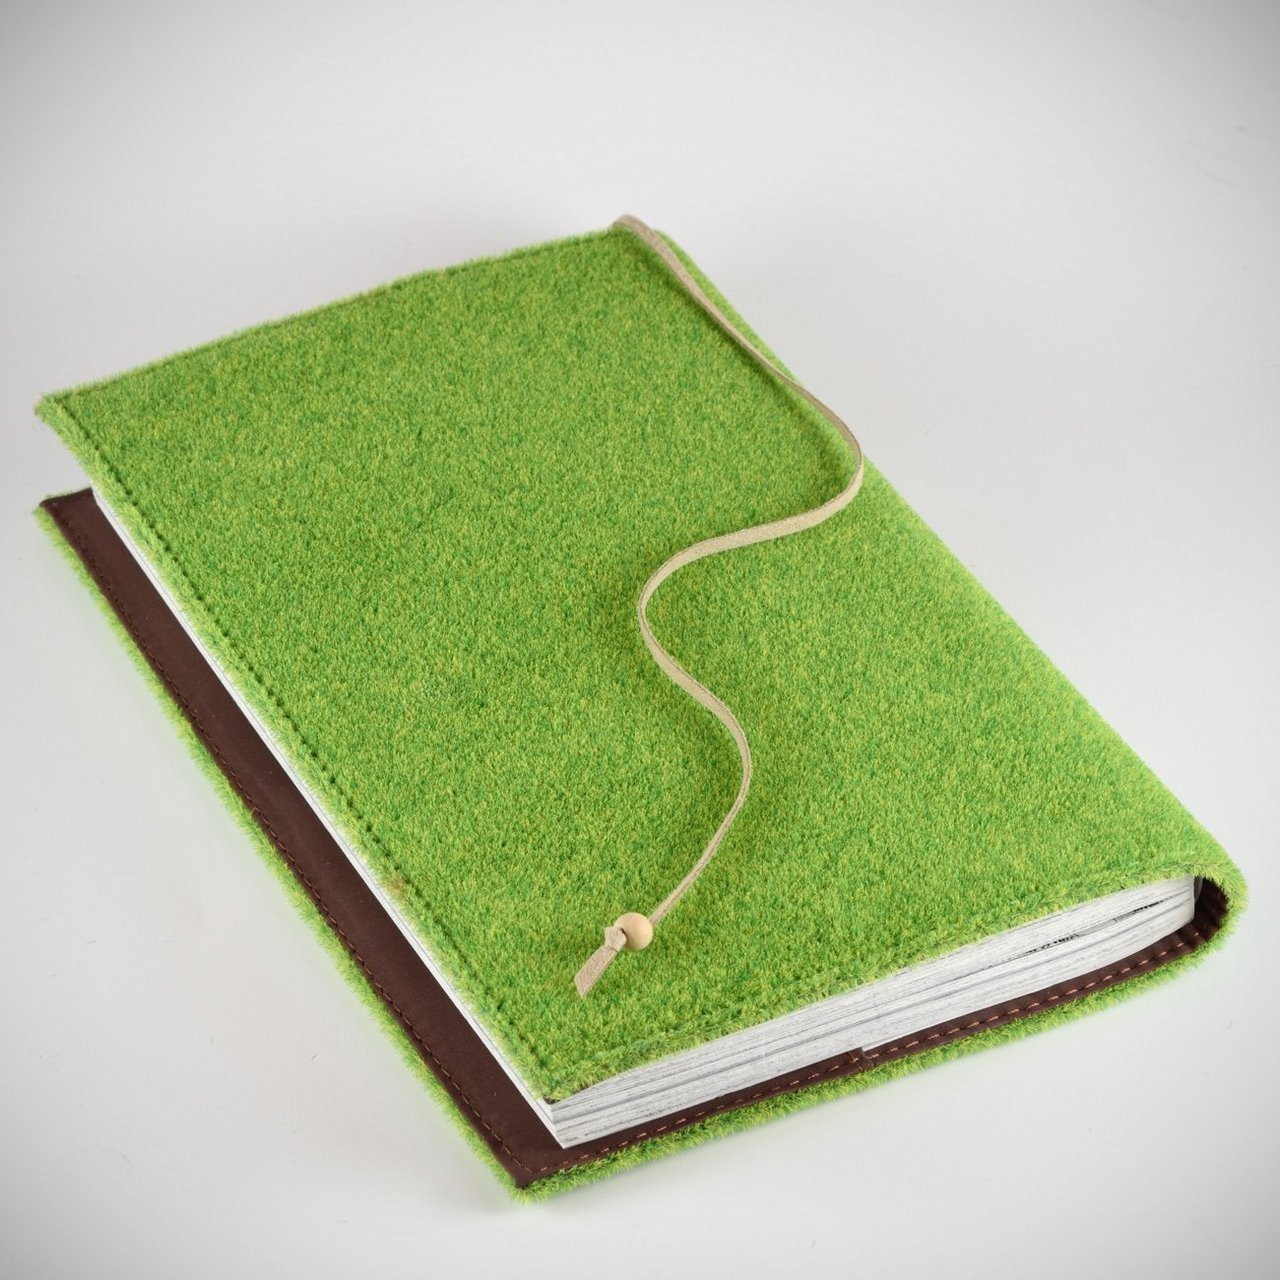 Shibaful Lawn Book Cover